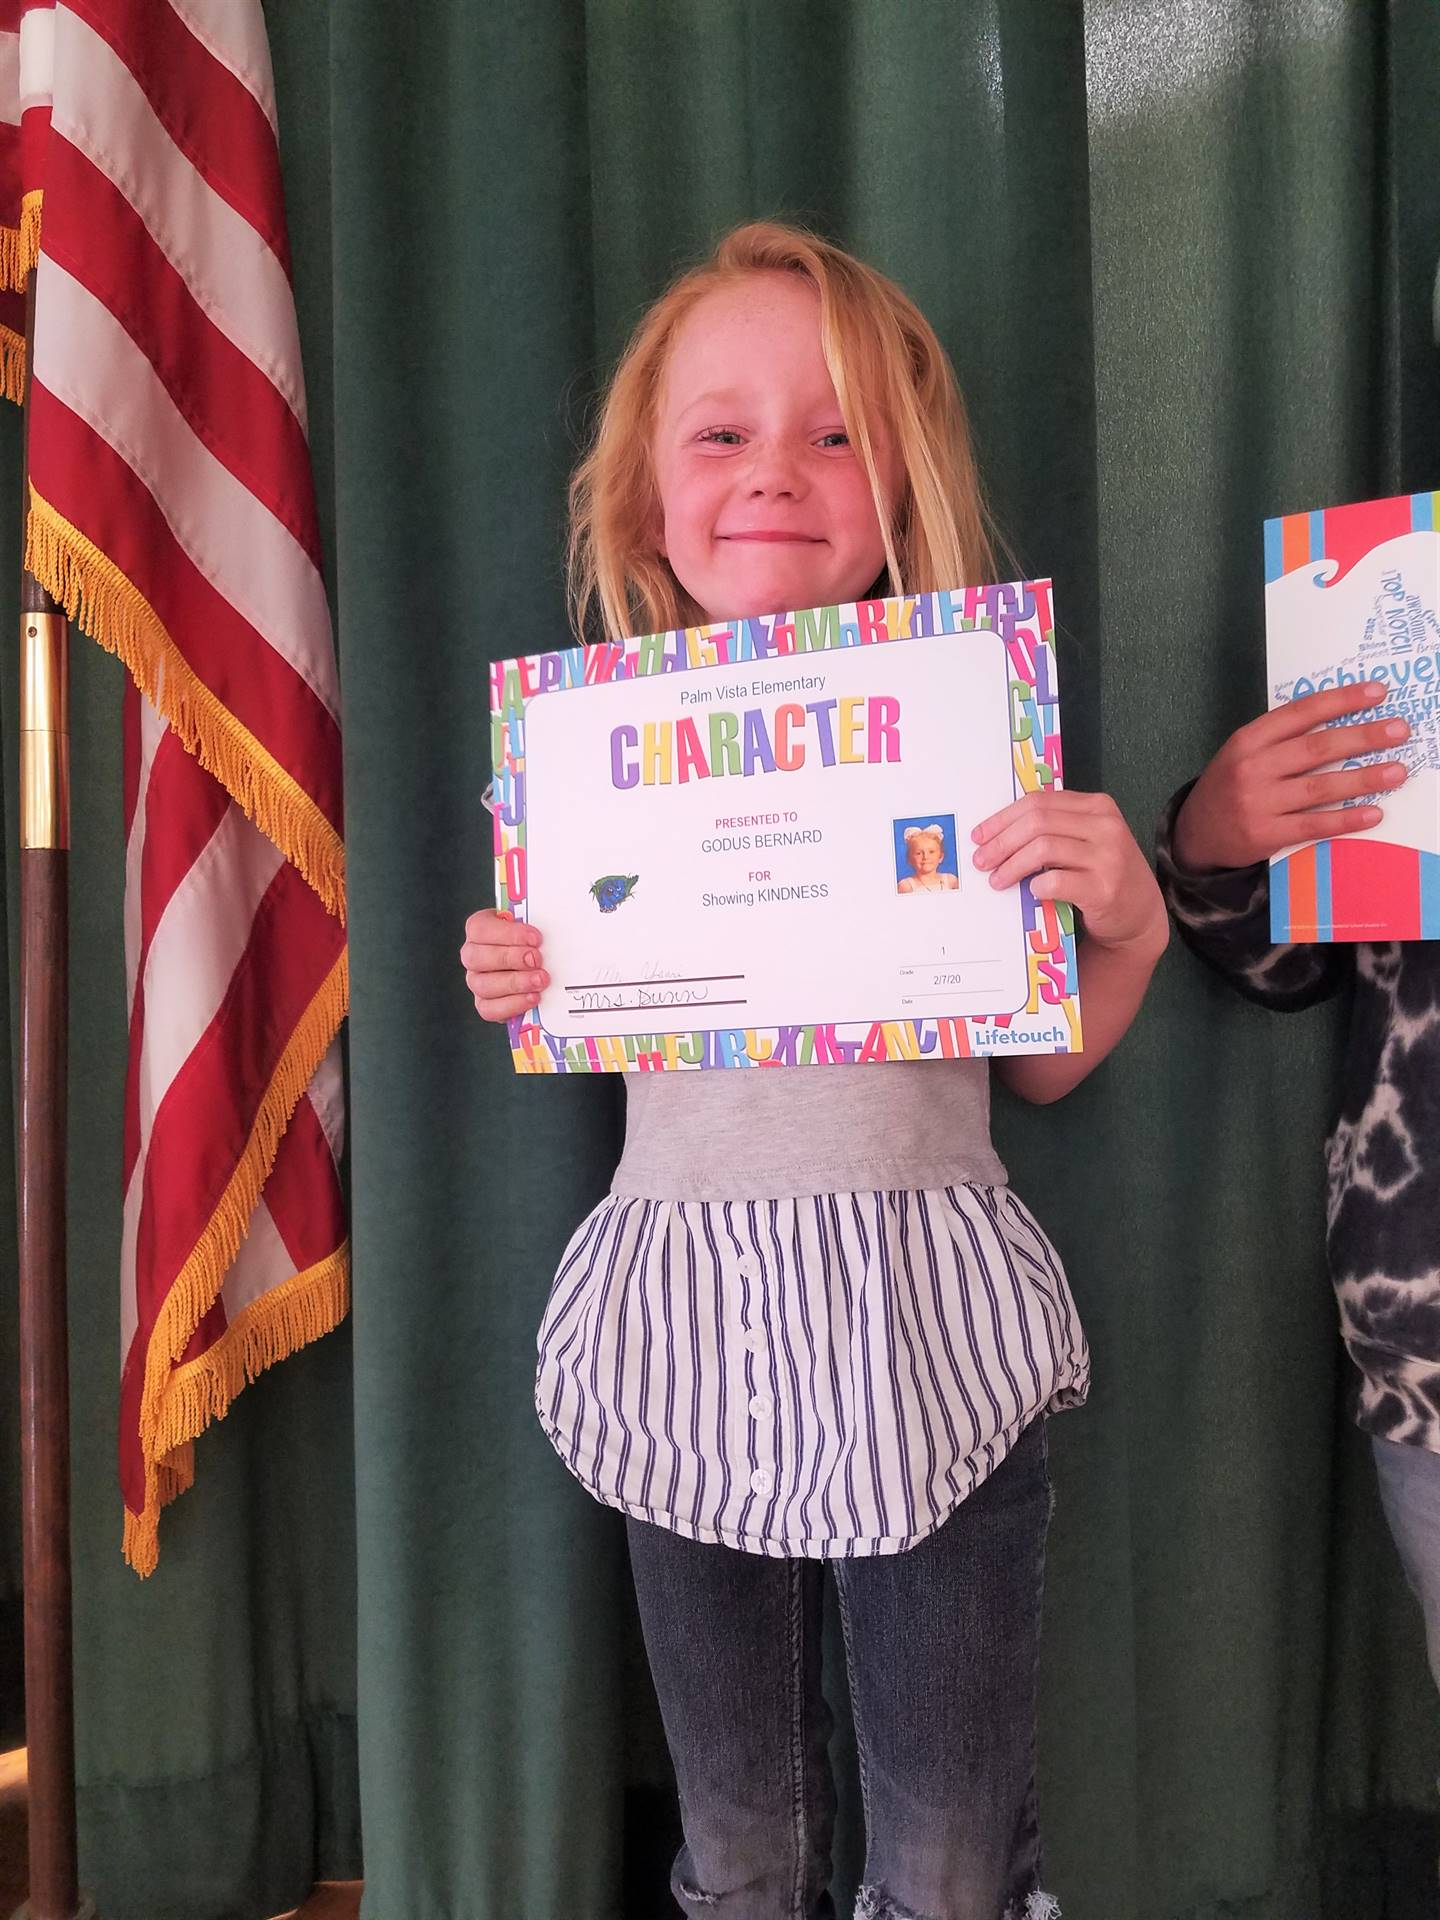 Student receiving Character award